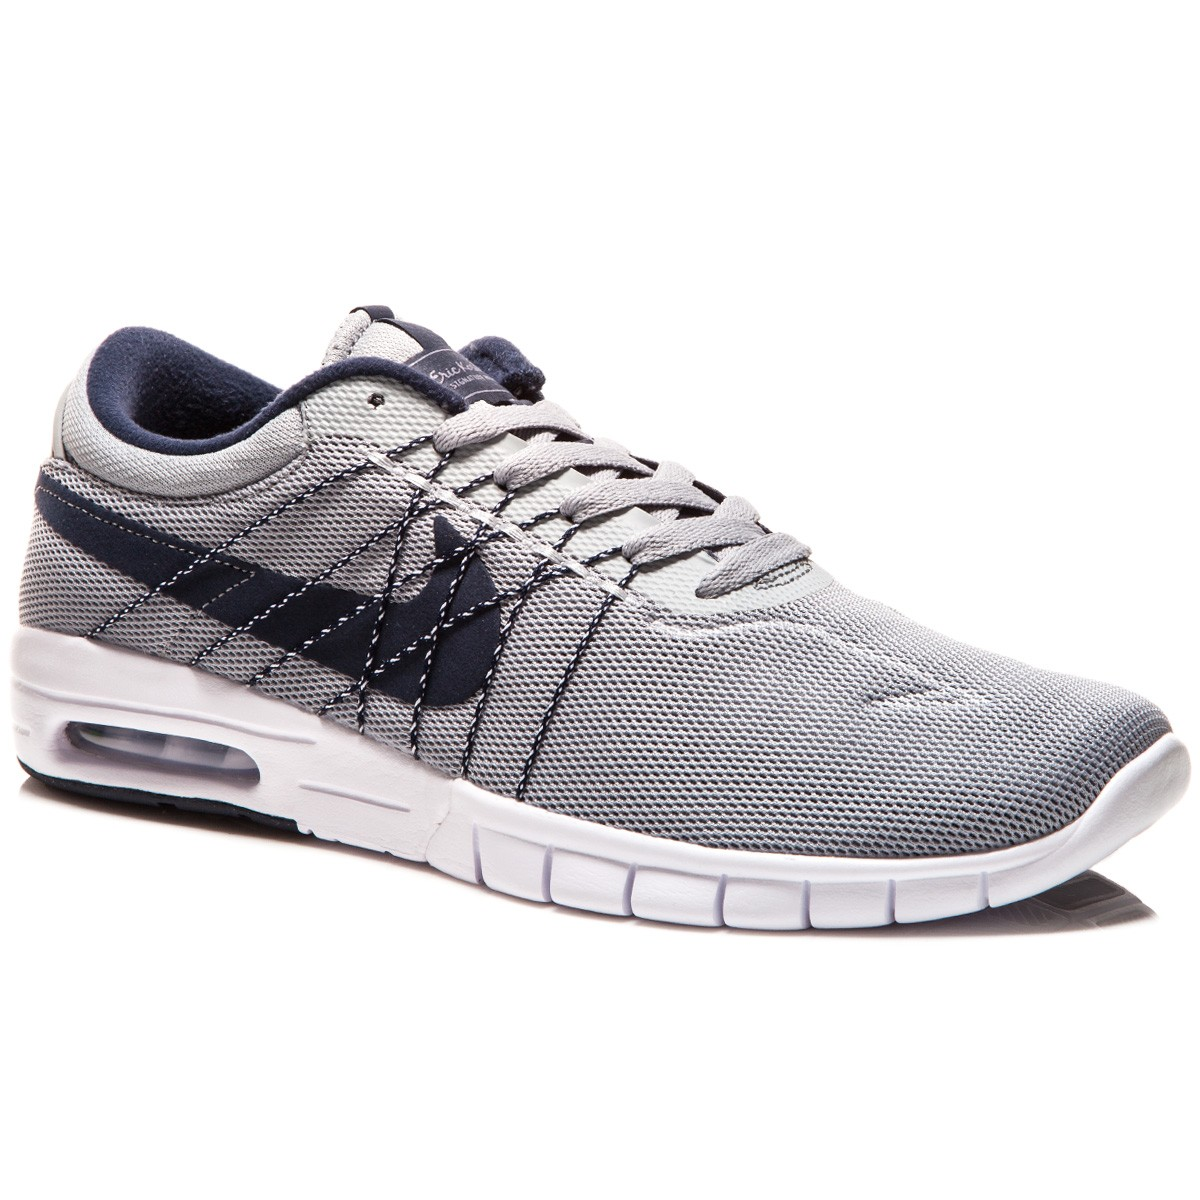 f75c80518439 Nike SB Koston Max Shoes - Grey White Obsidian - 8.0